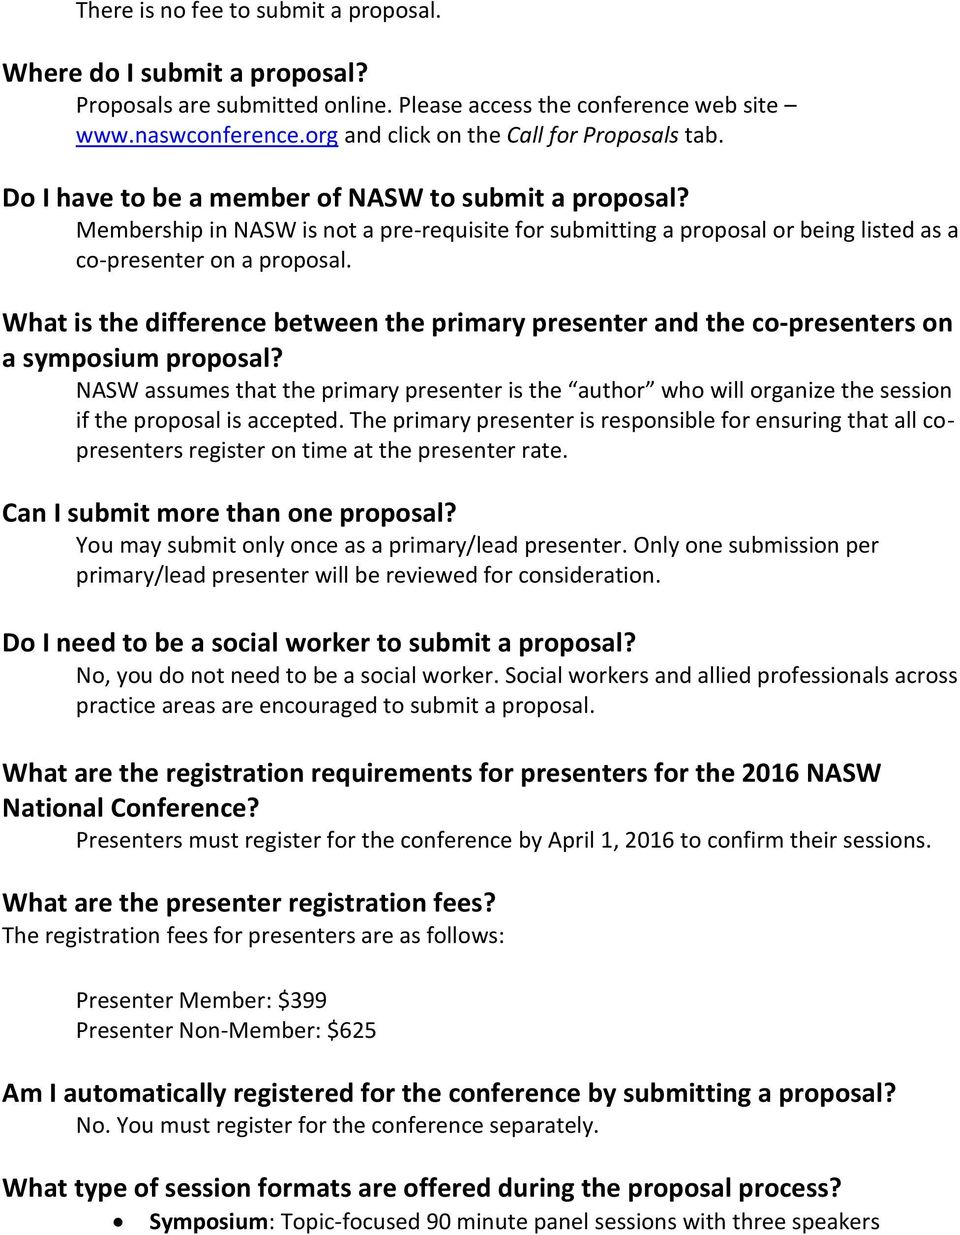 Membership in NASW is not a pre-requisite for submitting a proposal or being listed as a co-presenter on a proposal.